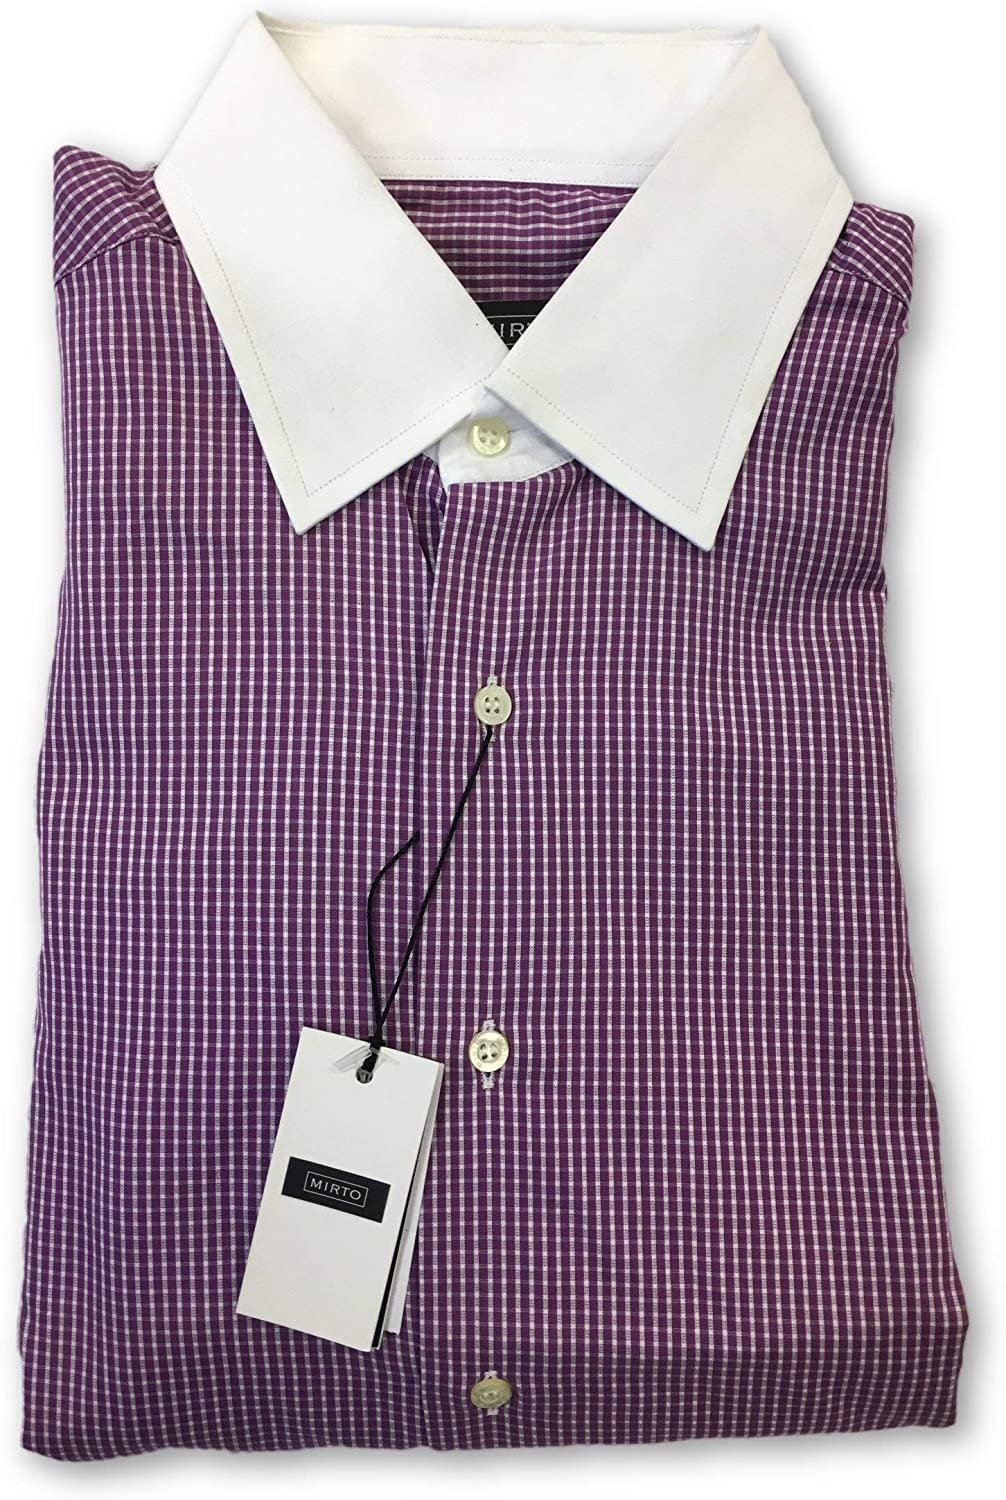 Mirto Shirt in Purple - 15.5: Amazon.es: Ropa y accesorios